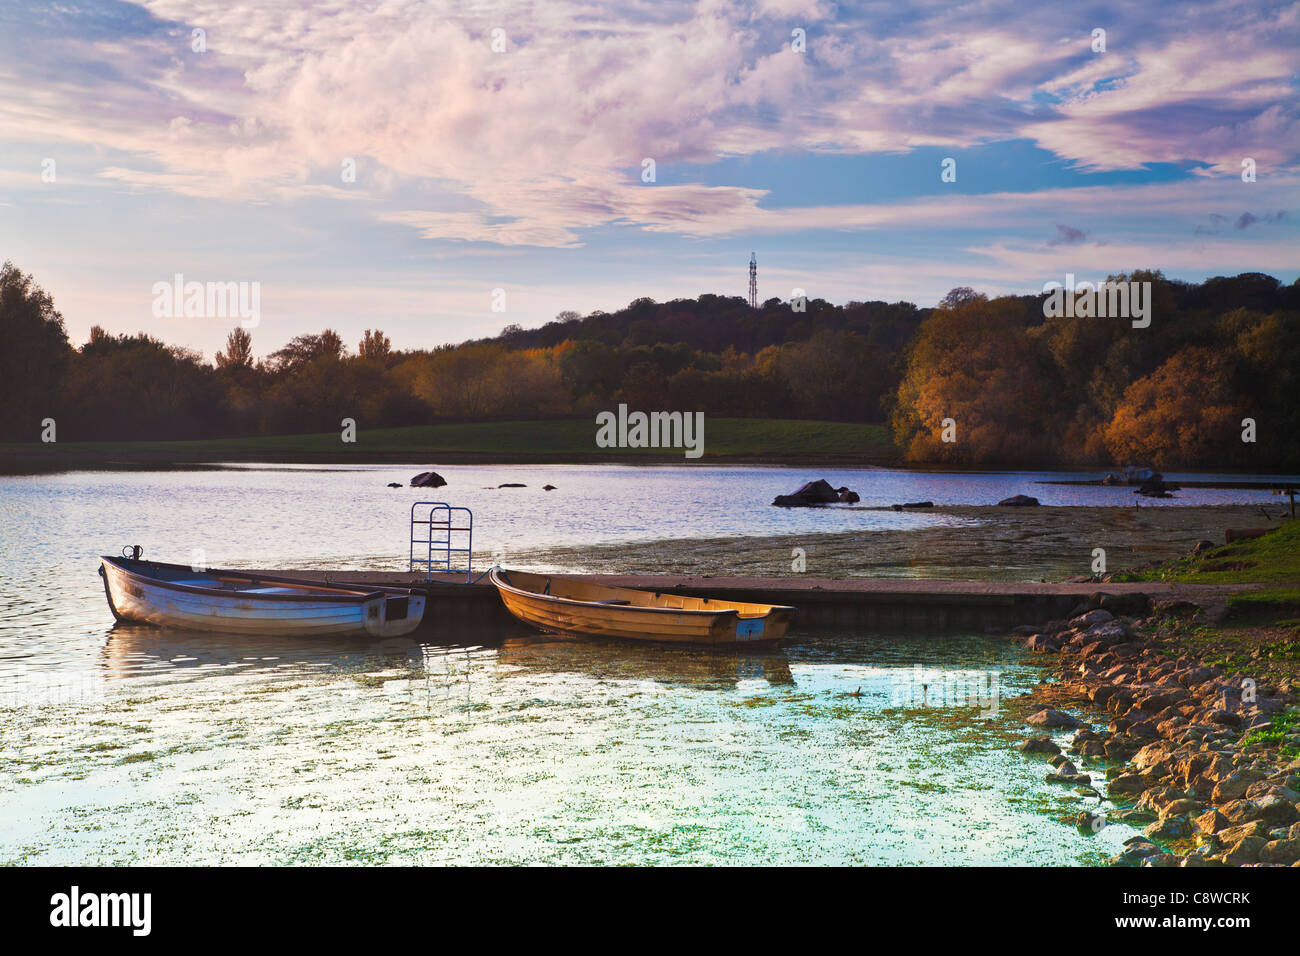 A late autumn afternoon on the lake at Colwick Country Park, Nottingham, Nottinghamshire, England, UK - Stock Image